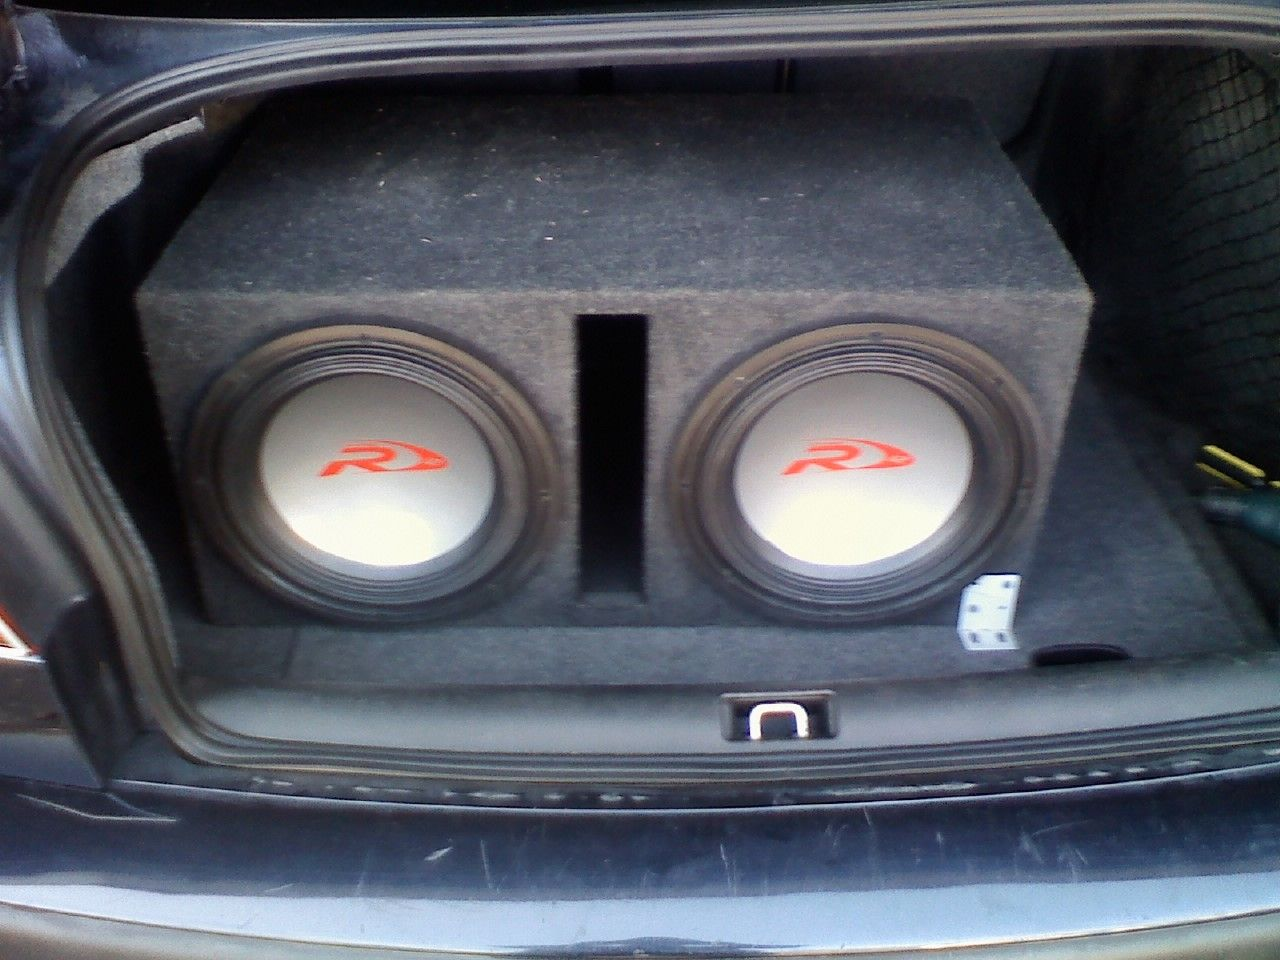 how to hook up alpine type s subs I have 2 12'' alpine type r subs at 500 rms each, 1000 watt can i hook up 2 alpine type-r 500 watt rms subs to a 1000 watt rms kicker mono amp.